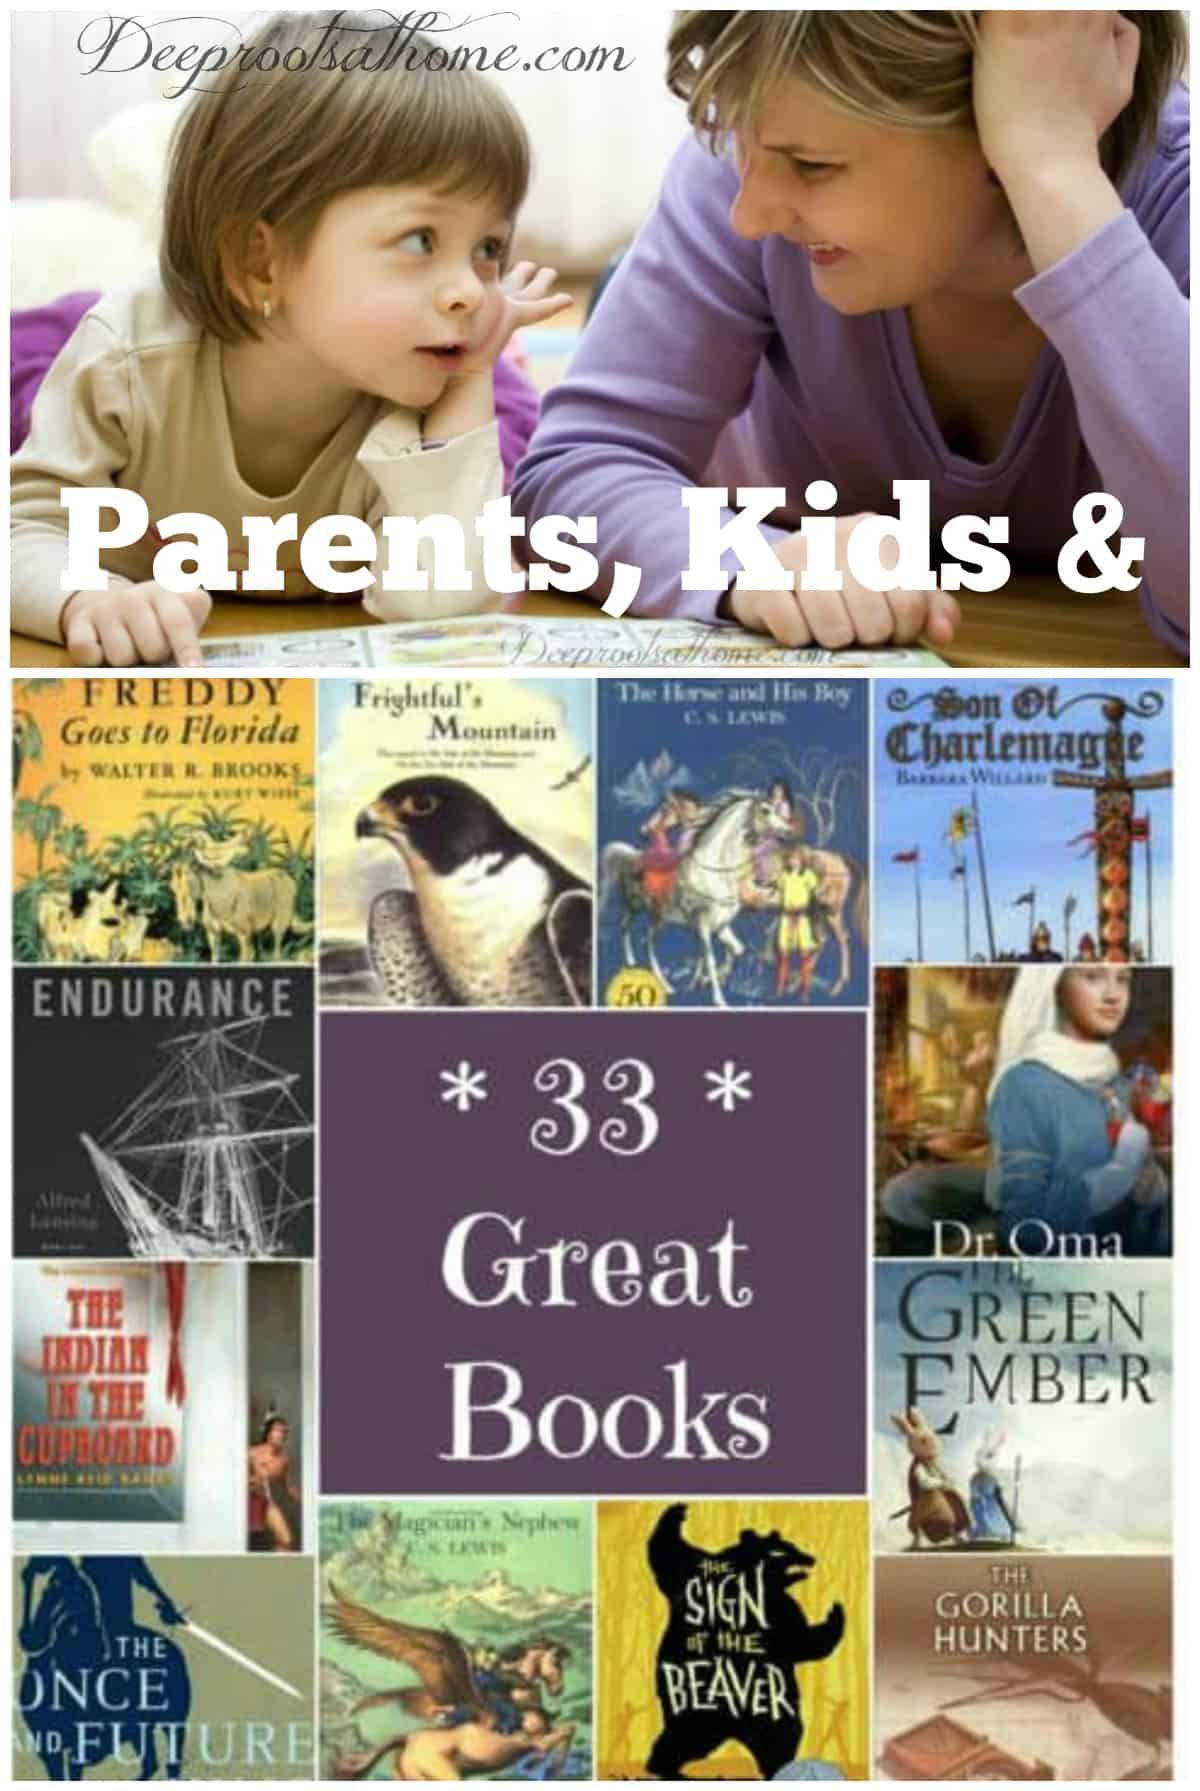 Parents, Kids, Great Books & The Bond Of Reading. A mom and tiny daughter talking together as they read a book.